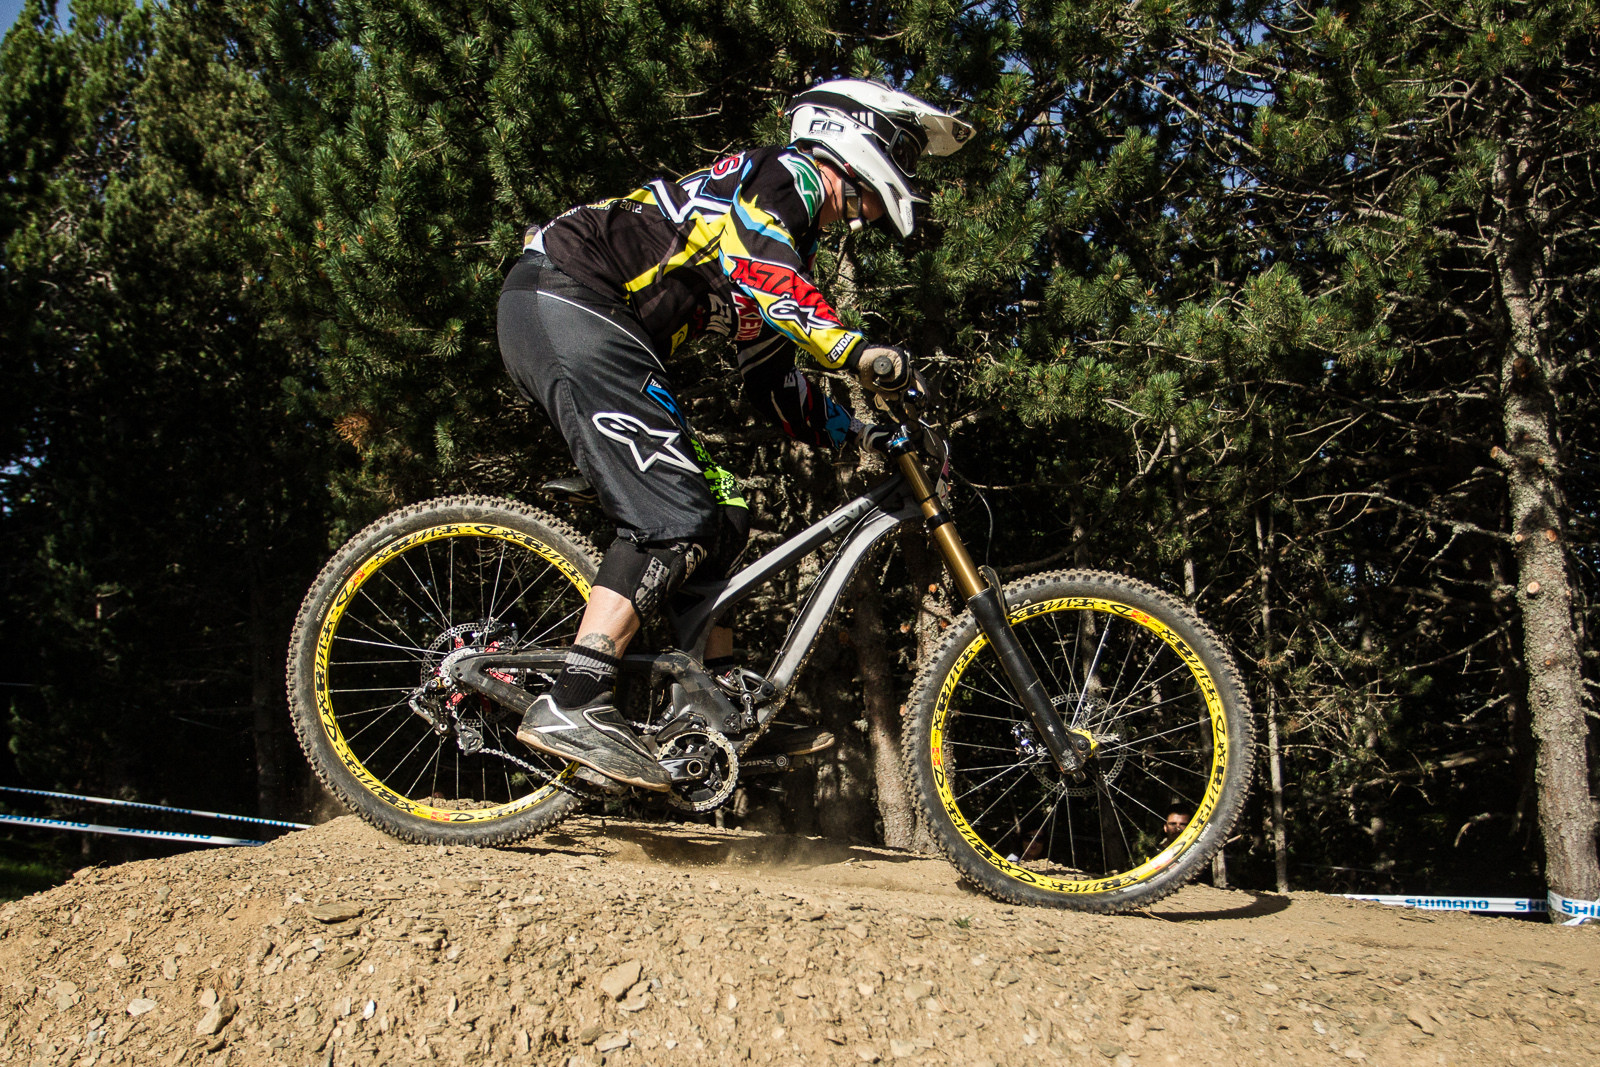 Evil Undead G-Out at Andorra World Cup - G-Out Project: 2013 Andorra World Cup - Mountain Biking Pictures - Vital MTB